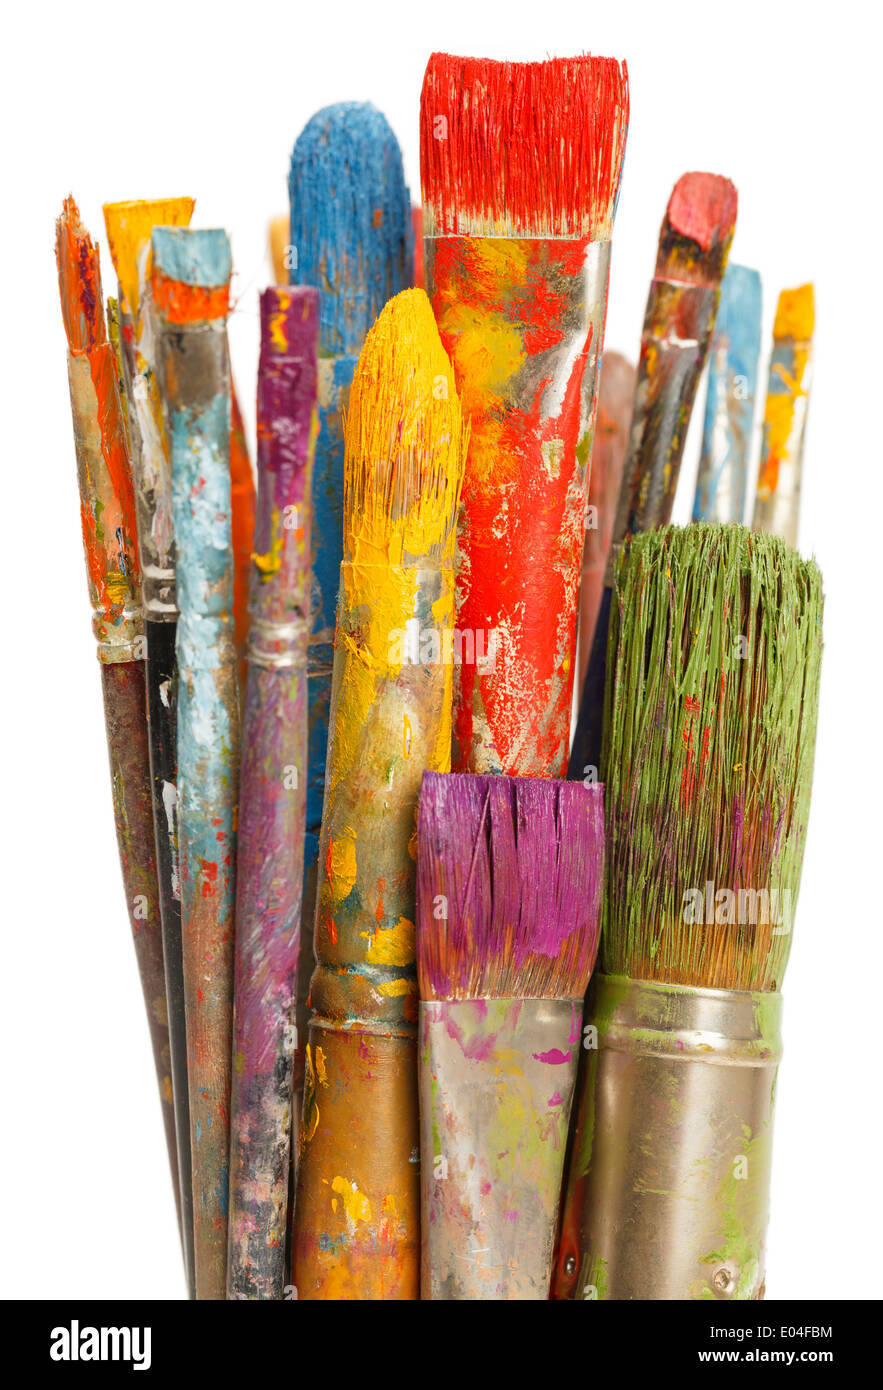 Group of Paint Brushes with Differnet Color Paints on Them Isolated on White Background. - Stock Image